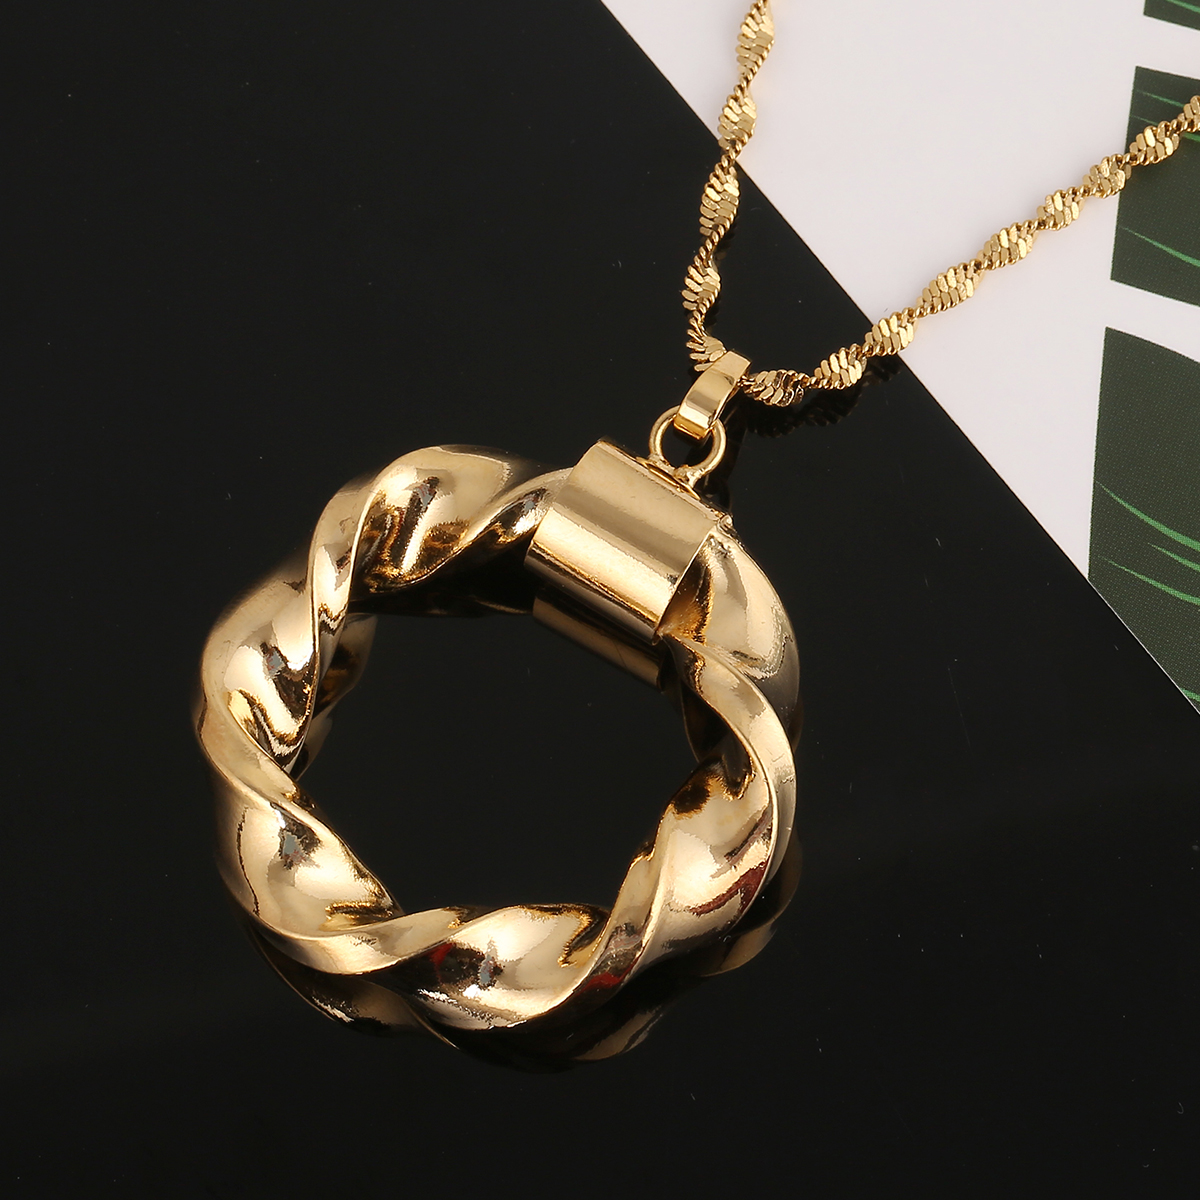 Dubai Gold Color Ethiopian Round Pendant Necklace African Jewellery for Israel Sudan Arab Middle East Women